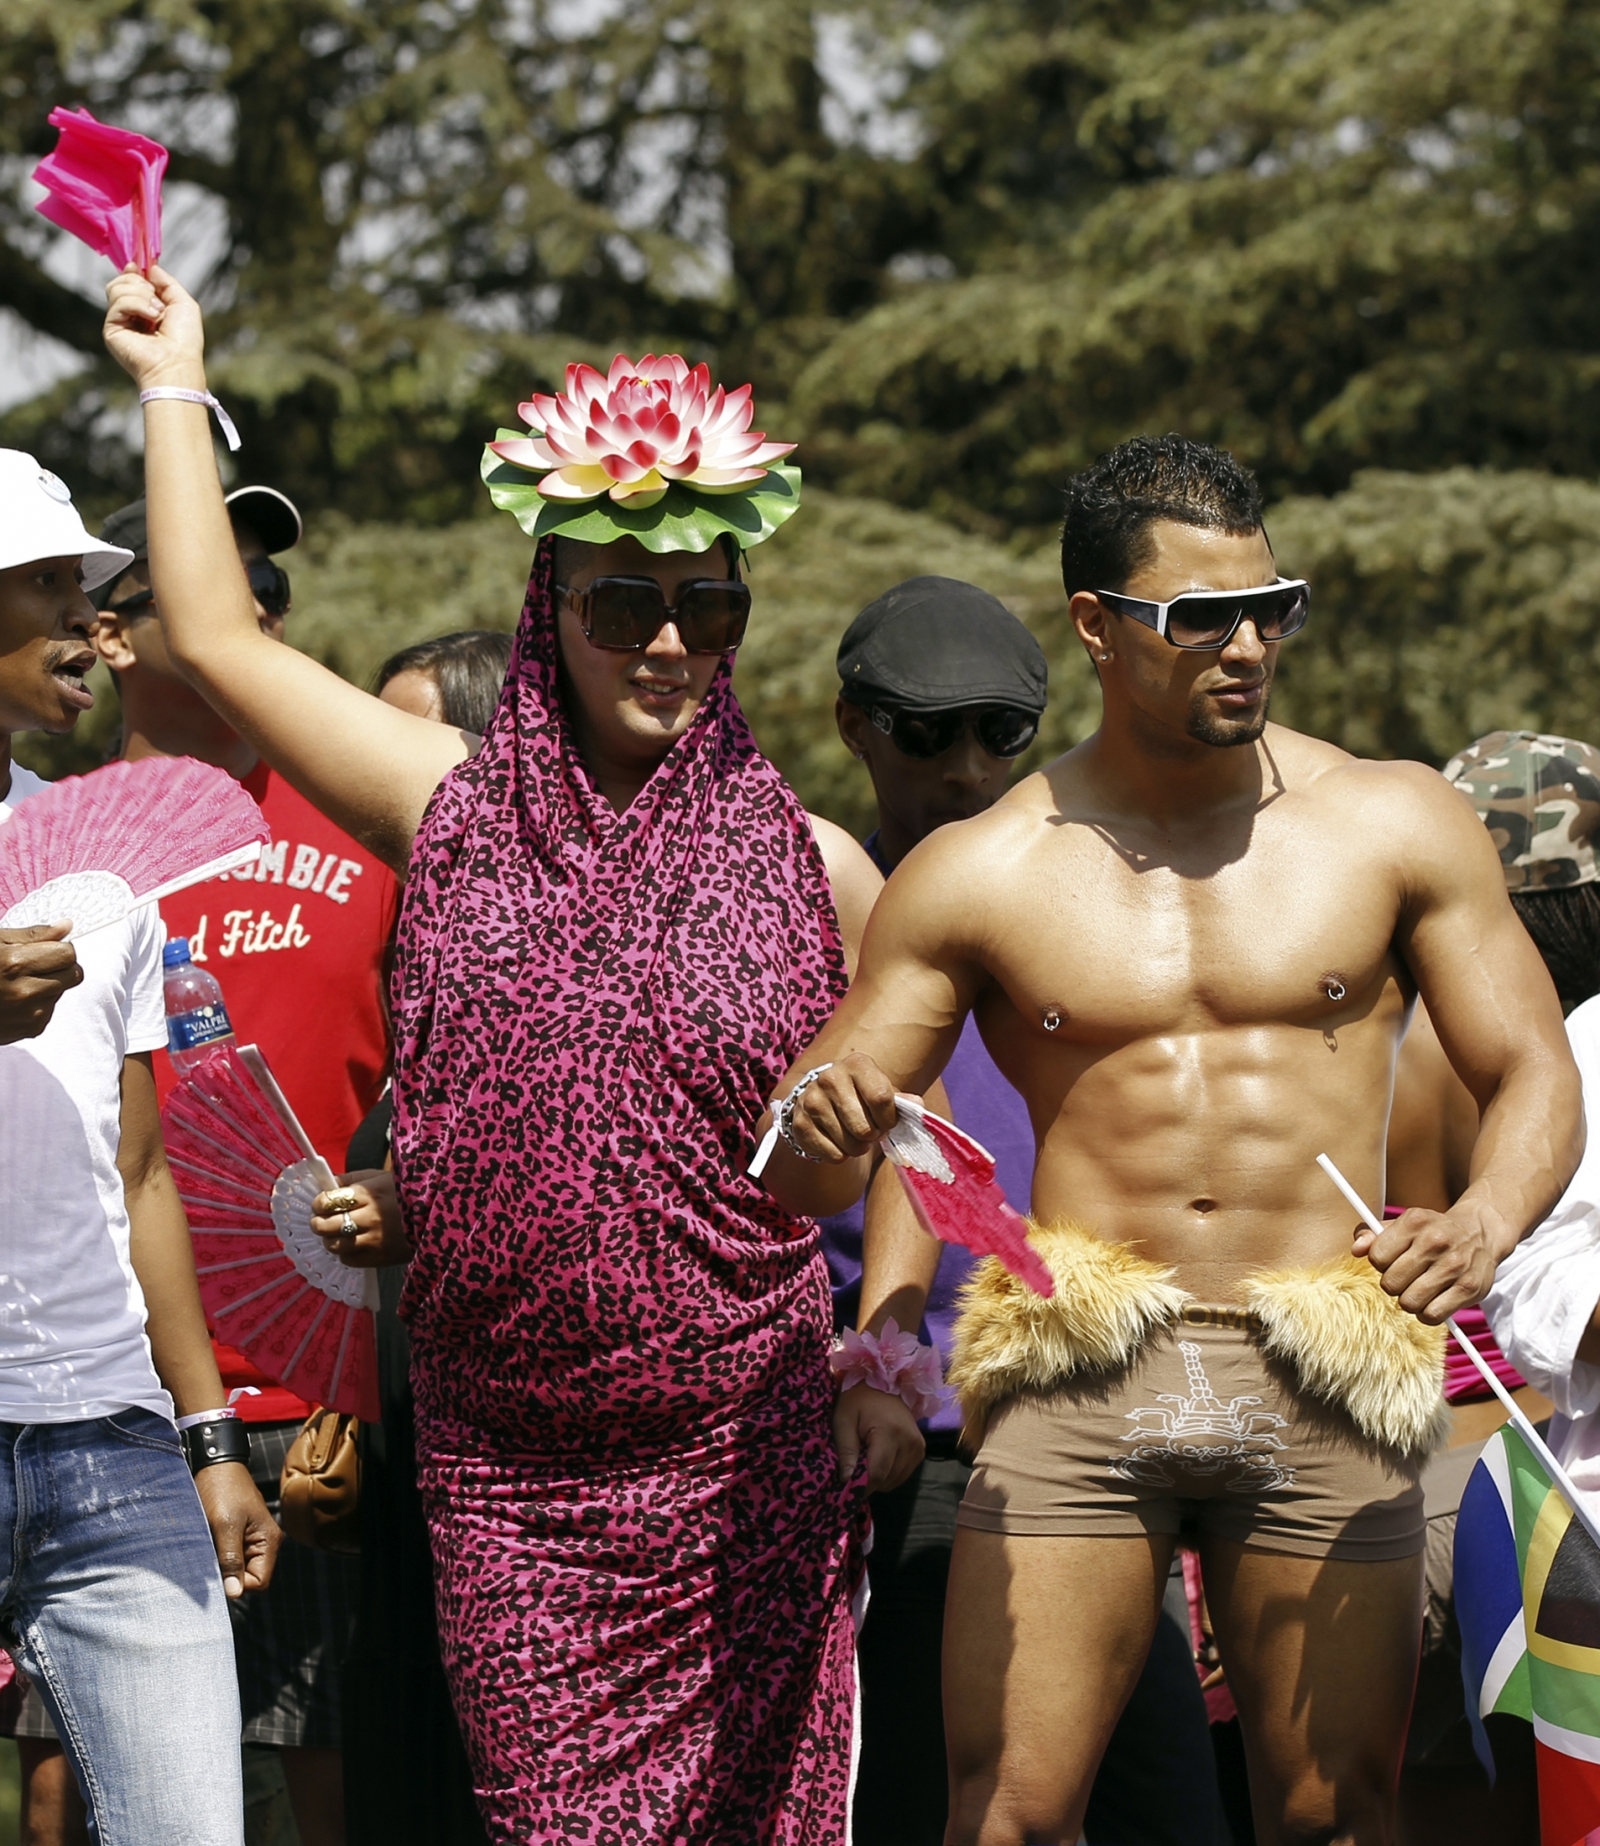 People take part in the Joburg Pride Parade in Johannesburg October 2, 2010